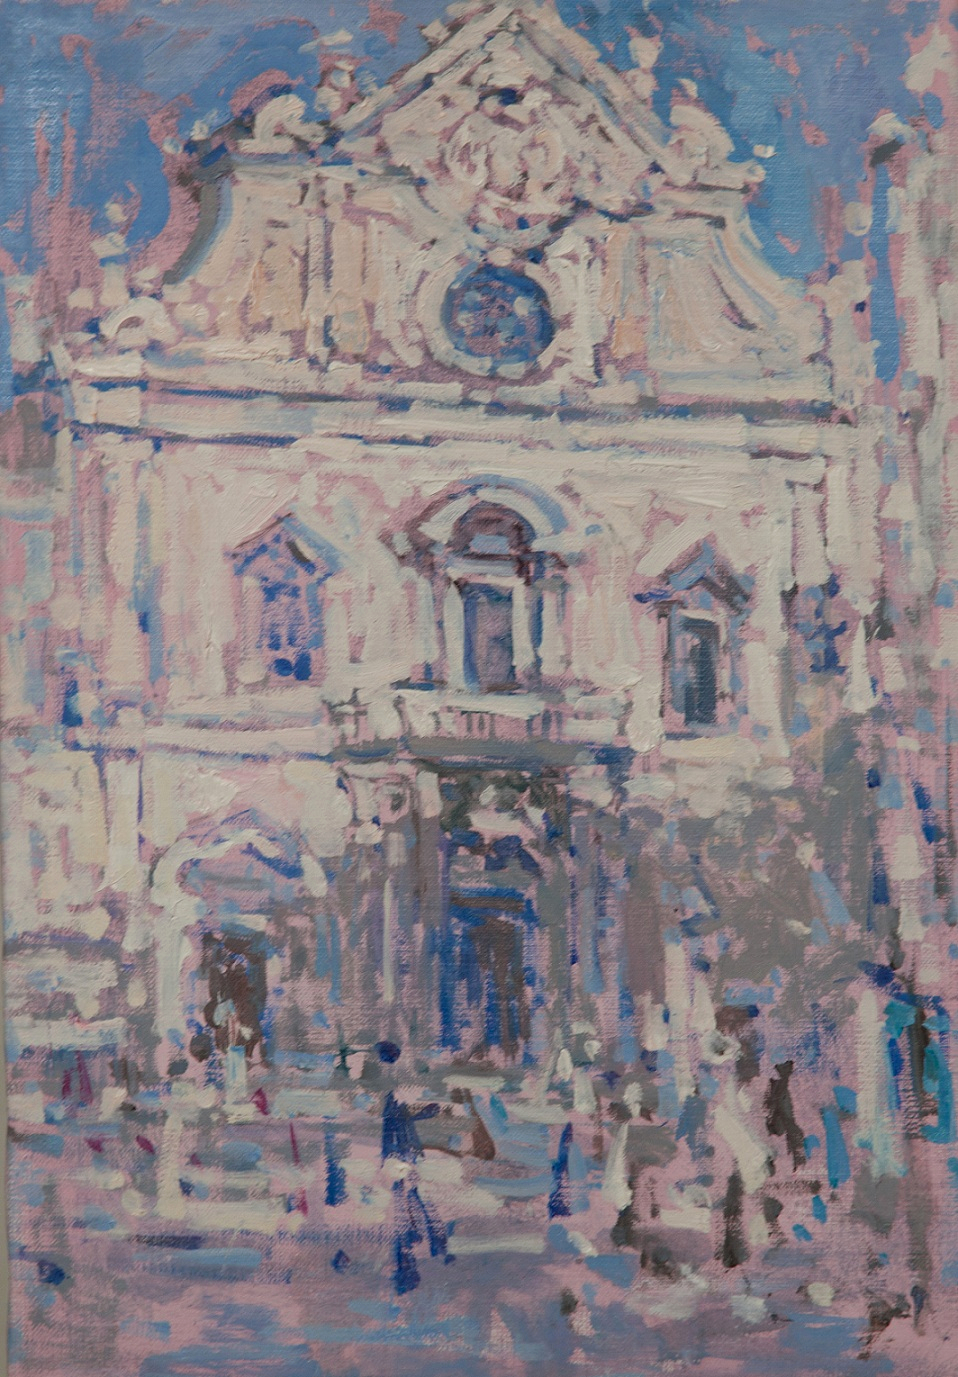 16.Igreja de Sao Domingos, oil on canvas, 44x31cm.jpg